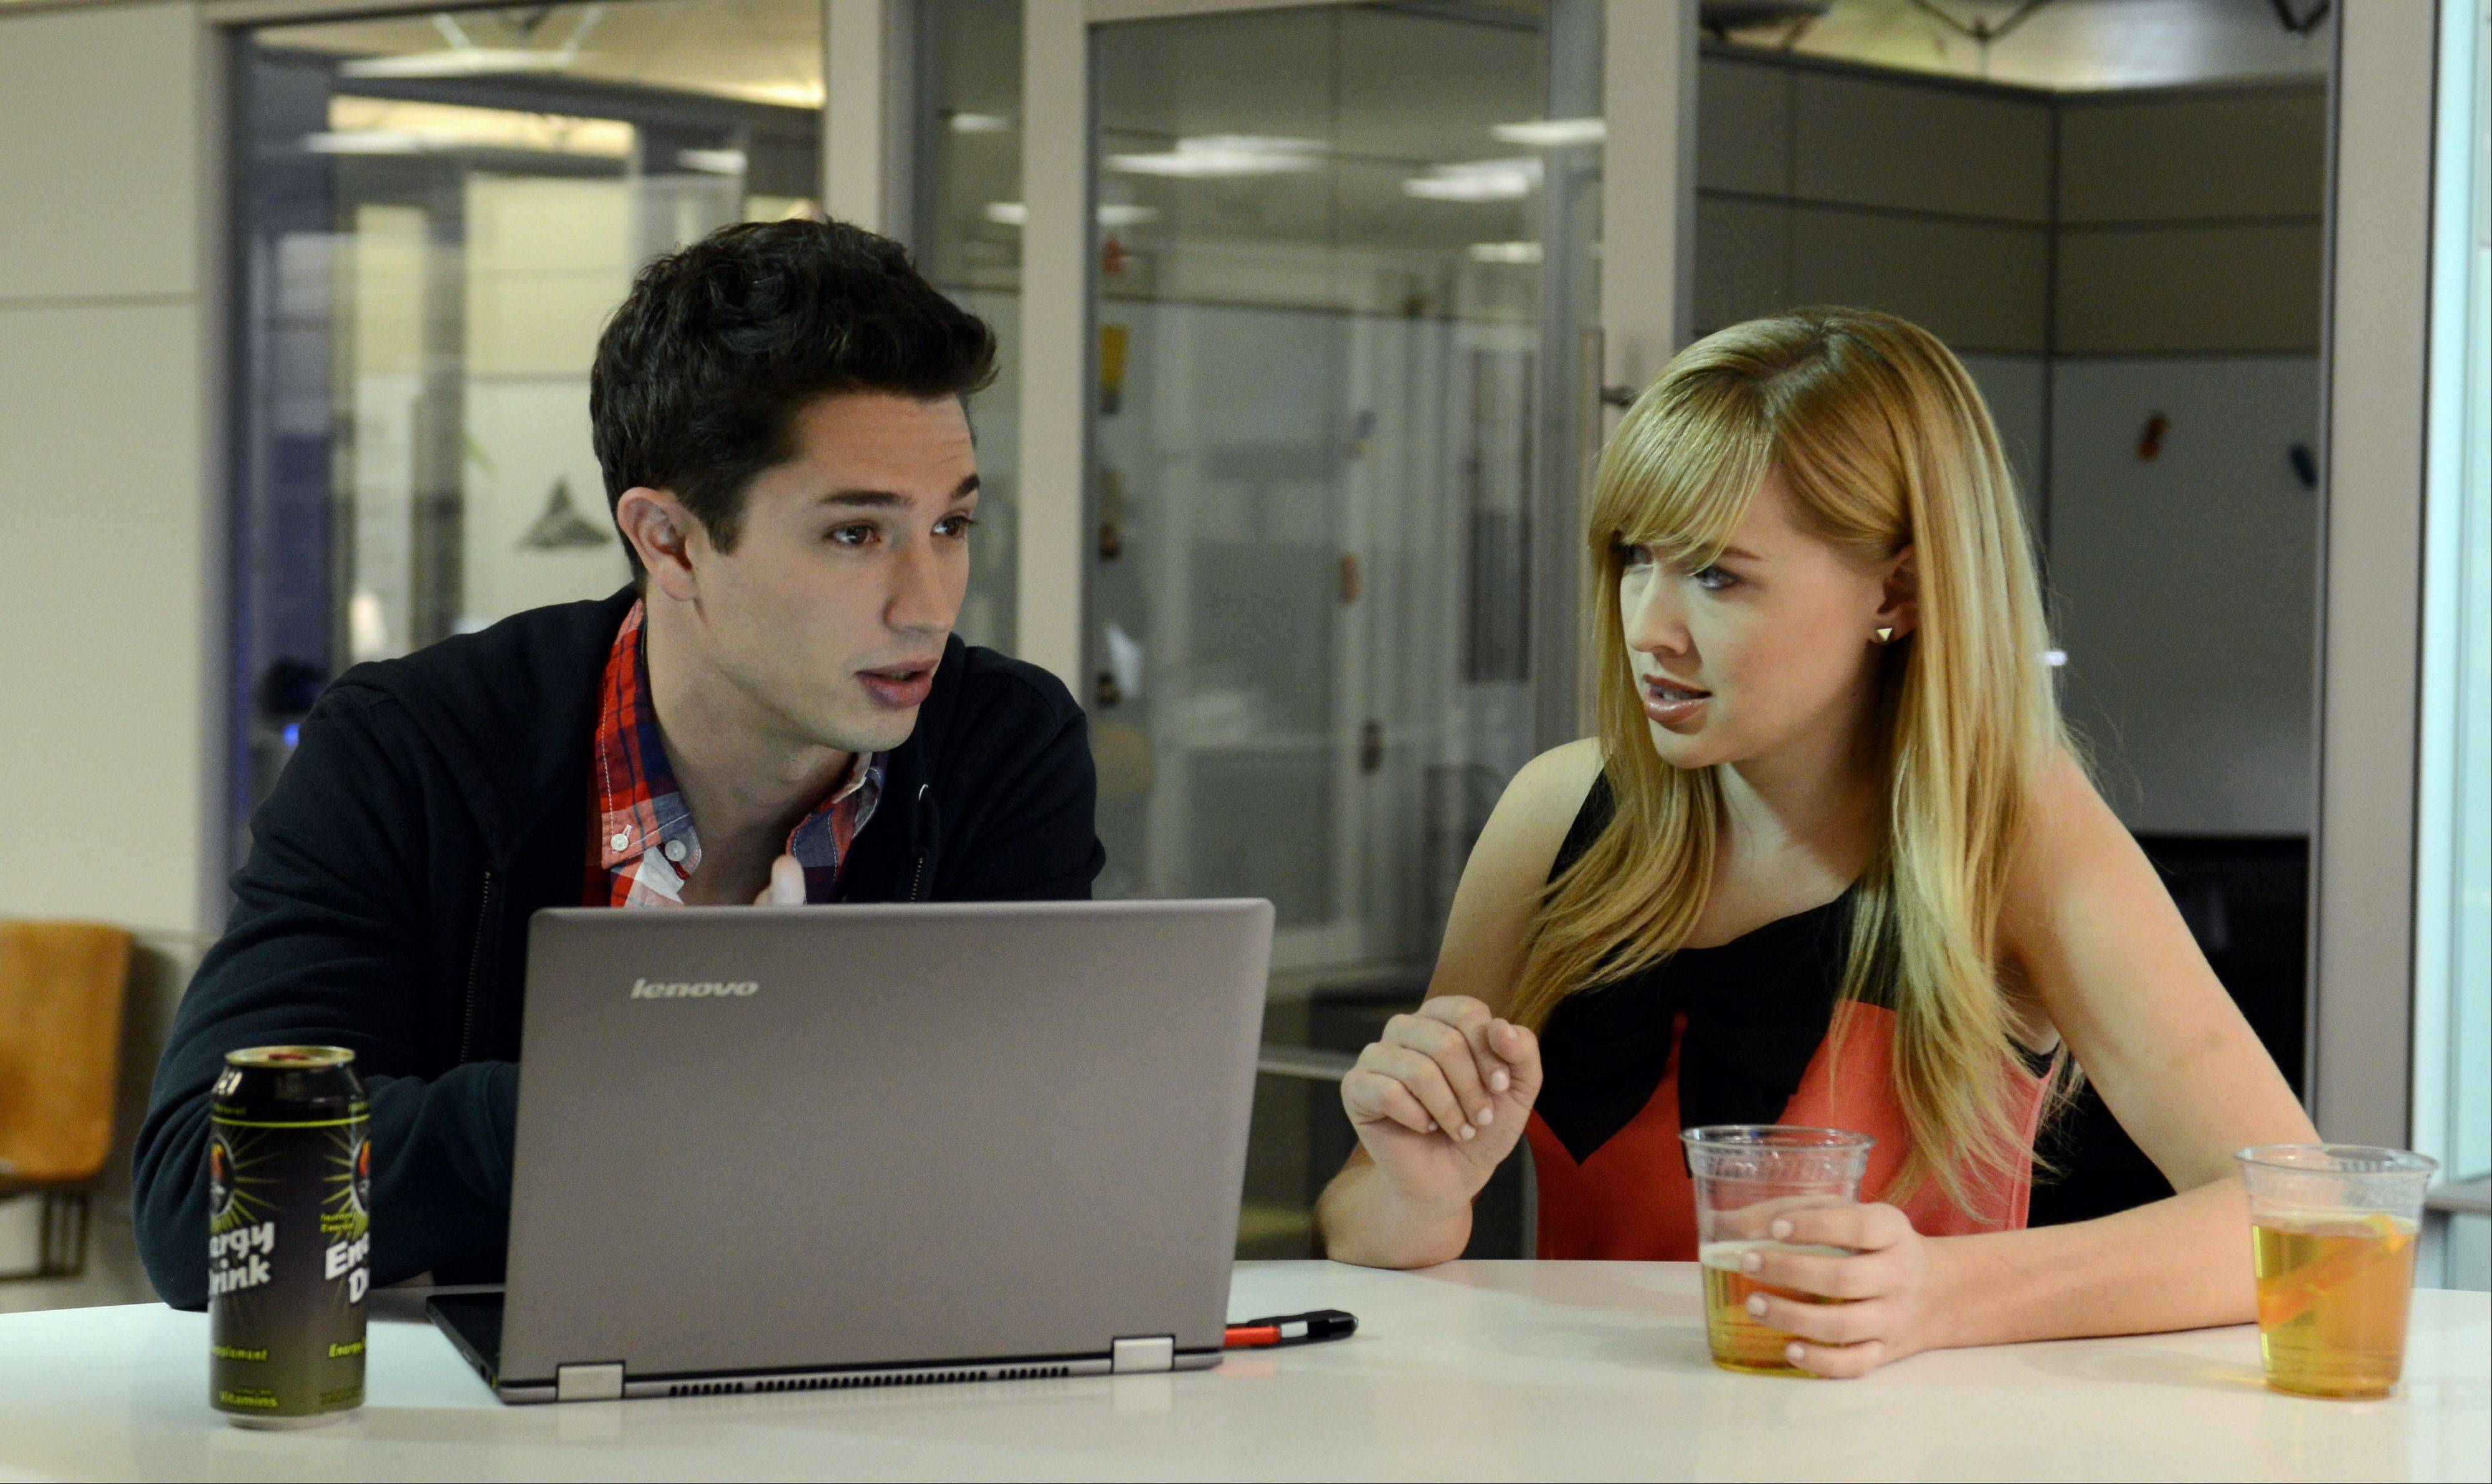 This undated image provided by Amazon shows actors Joe Dinicol, left, and Sarah Stouffer act out a scene from an episode of ìBetas,î one of 14 TV show pilots being made by Amazon.com Inc. Amazon is hoping people will sign up to pay $79 a year for an Amazon Prime membership, a free shipping, online video and e-book borrowing service that will include access to the full series on the Web, connected TVs and mobile devices when they're completed.